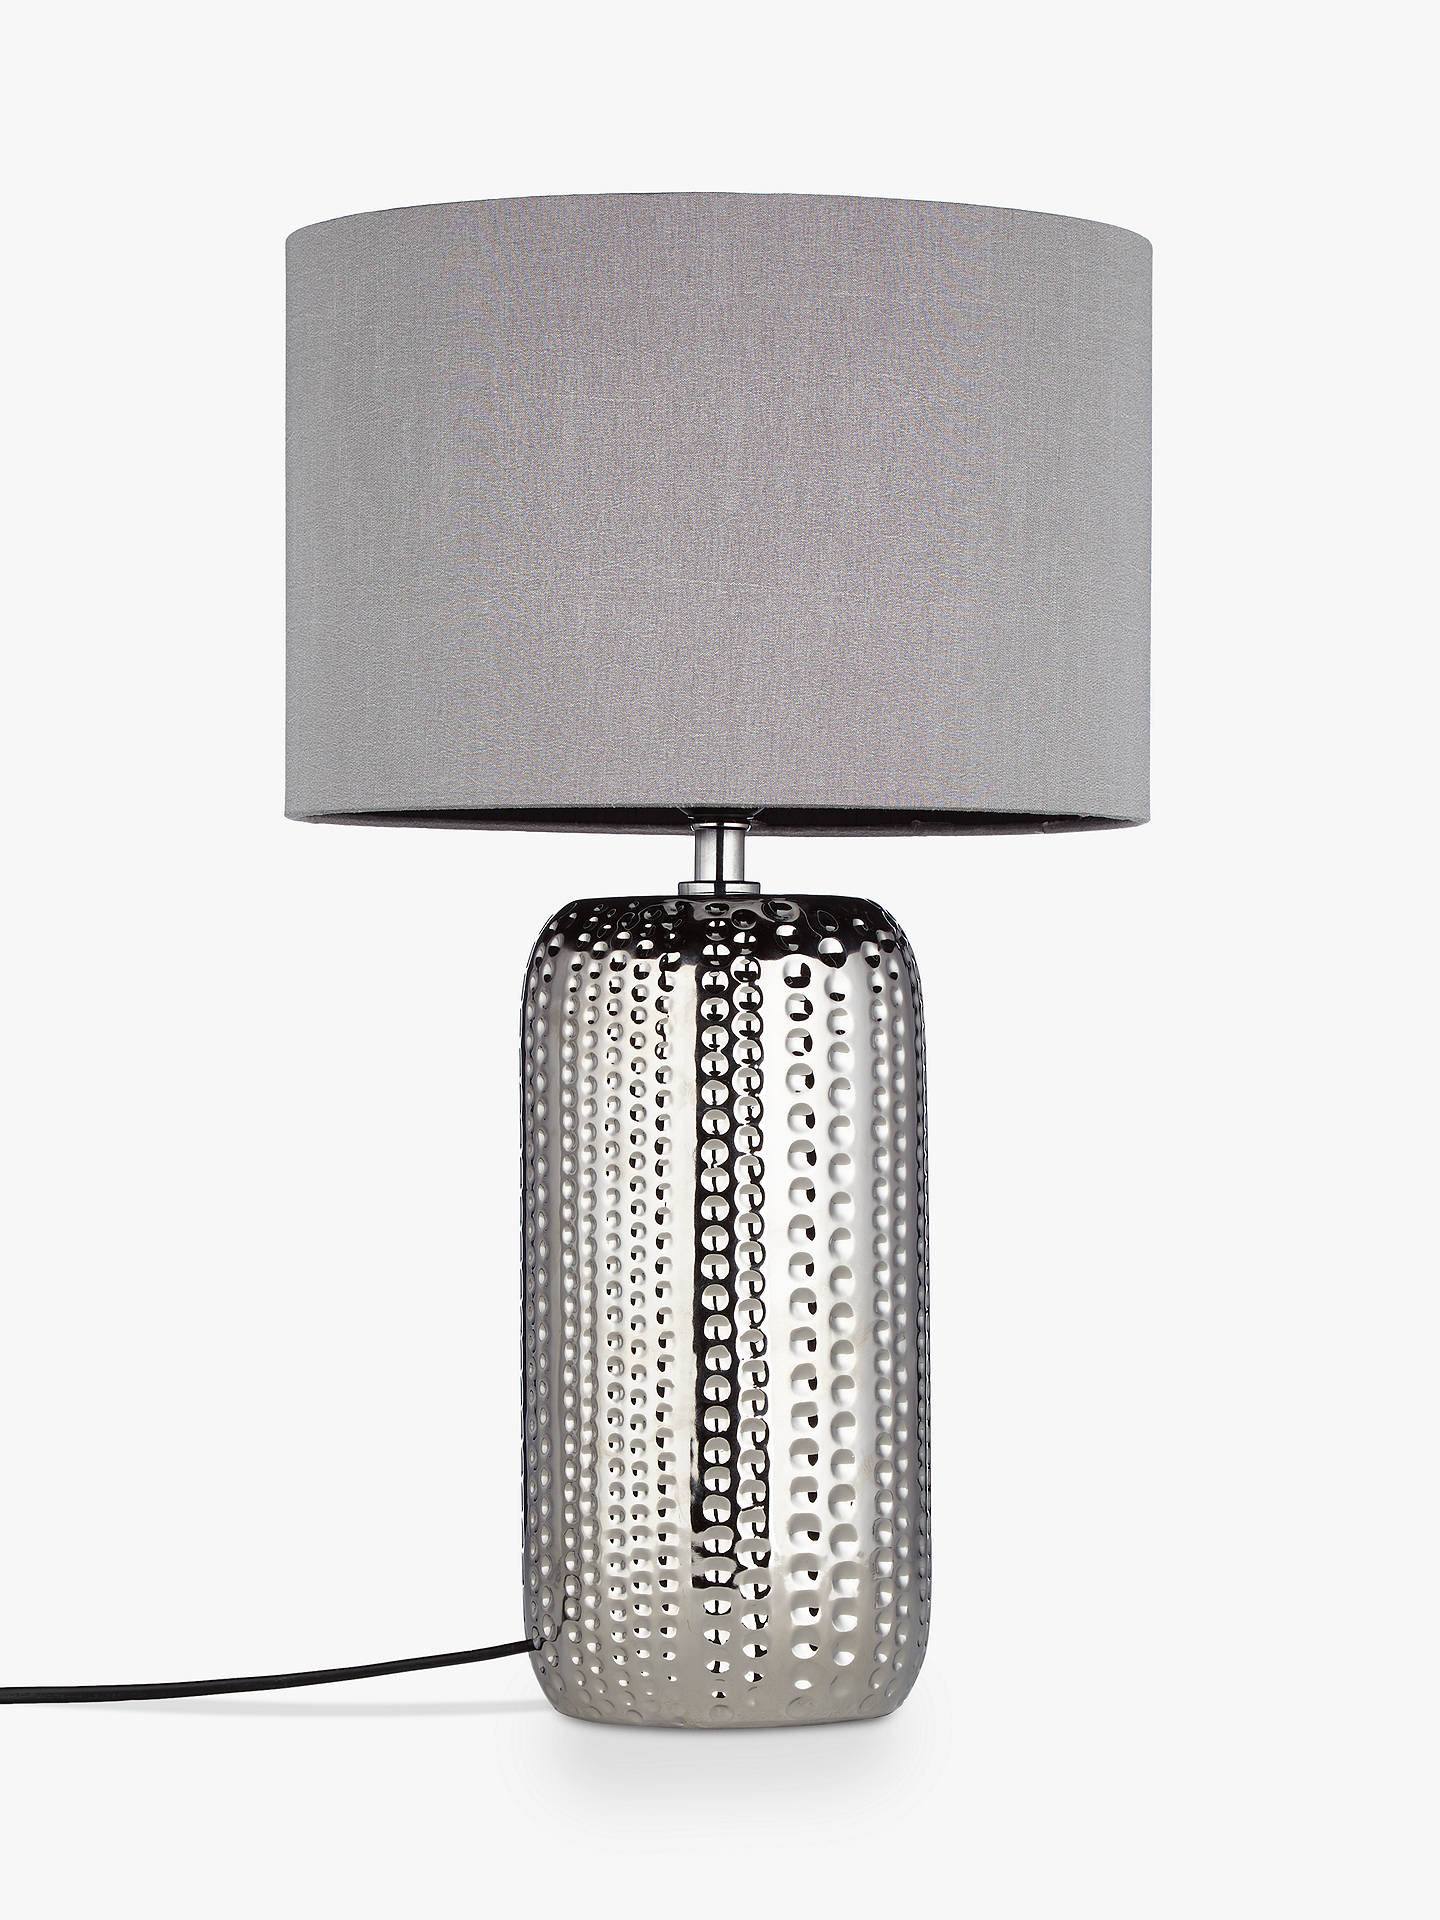 BuyJohn Lewis & Partners Sabrina Dimple Ceramic Table Lamp, Chrome Online at johnlewis.com